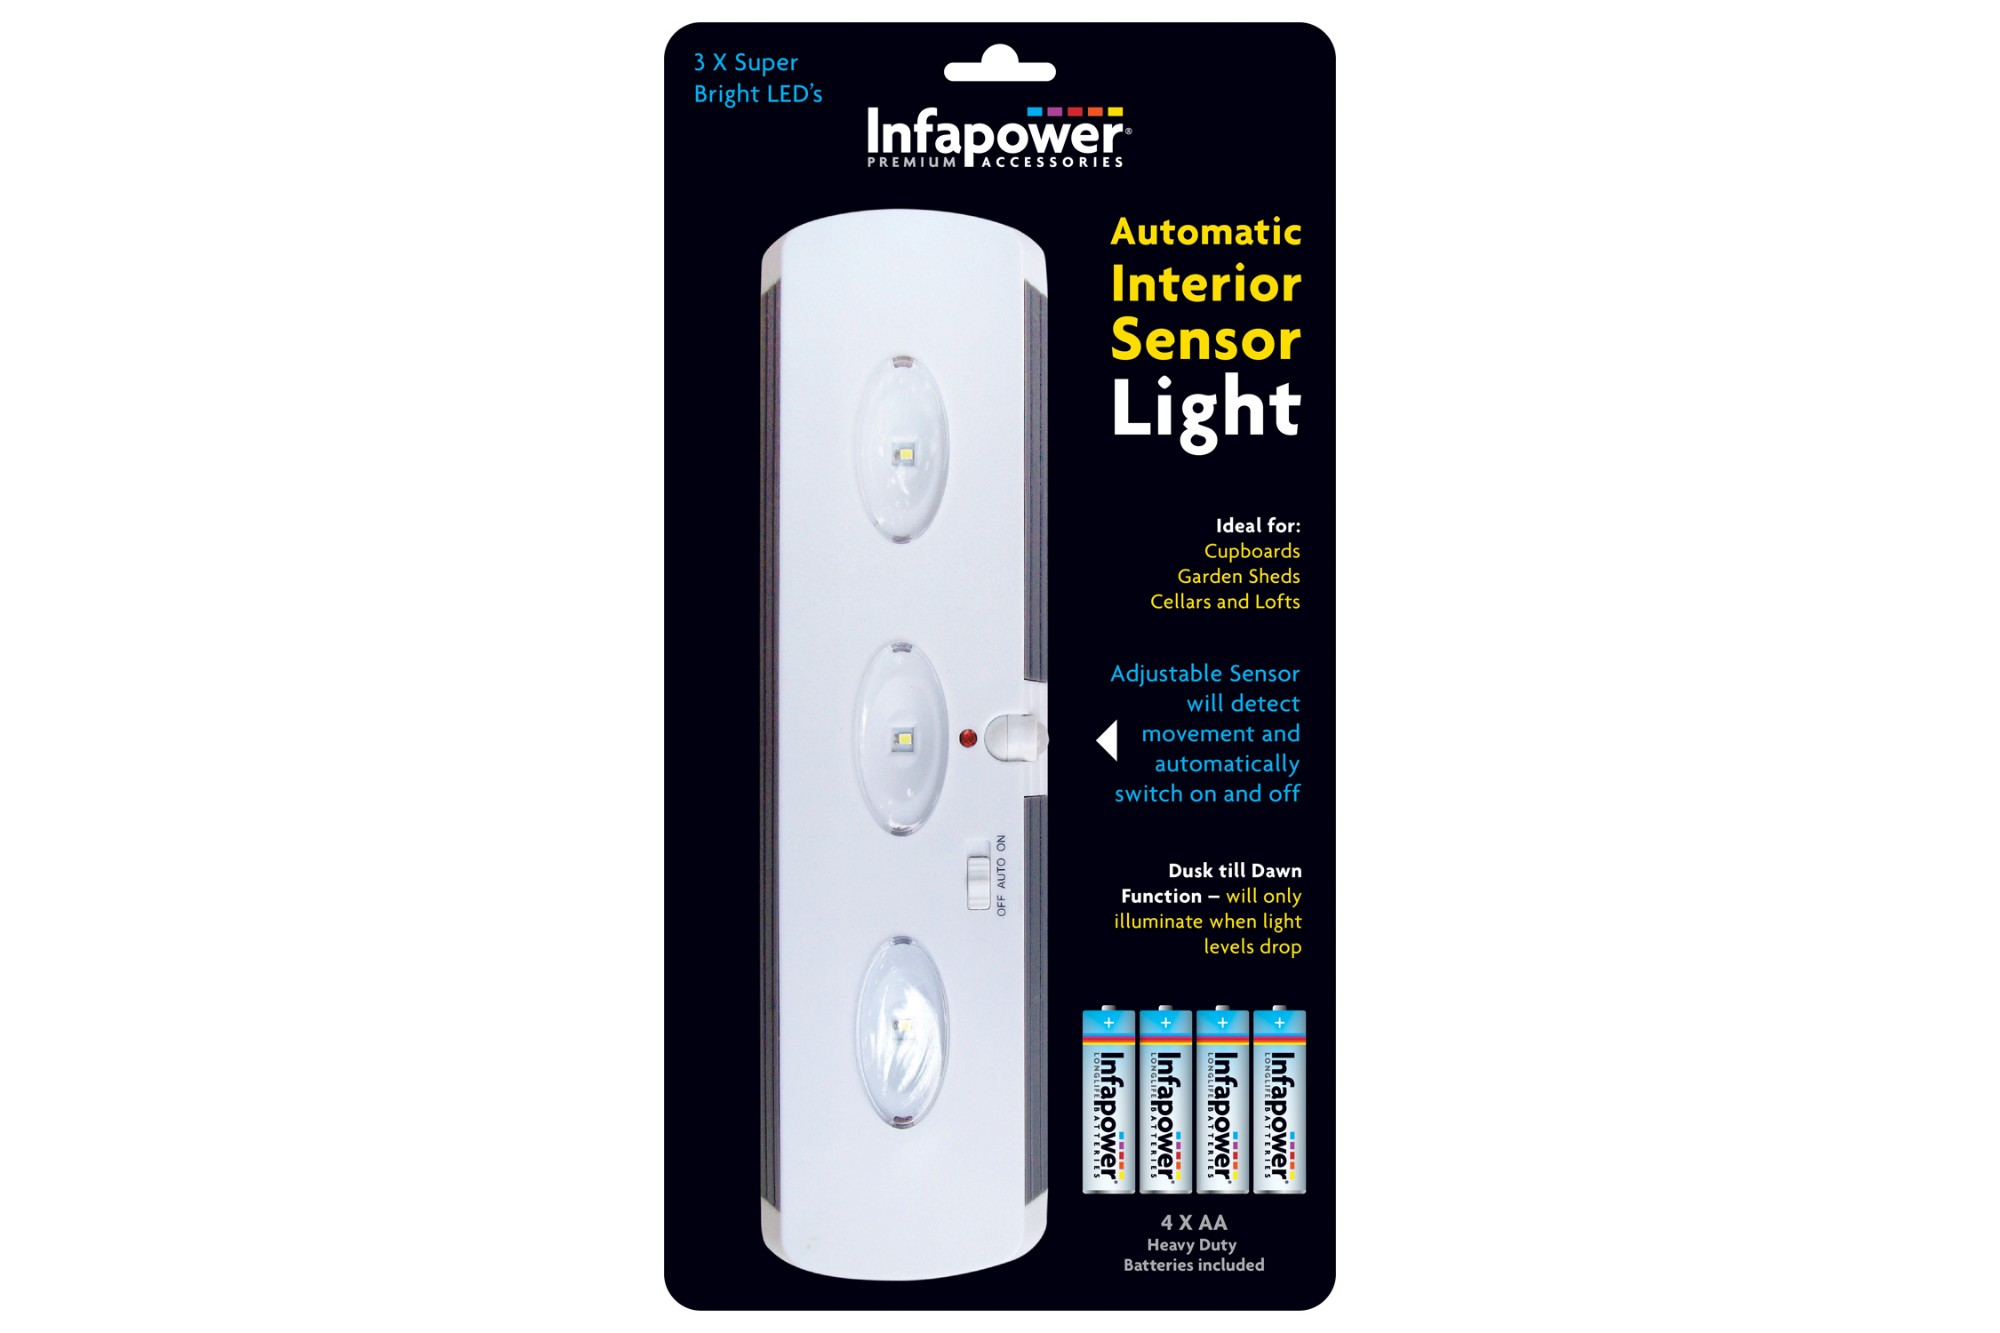 INFAPOWER Automatic Interior Sensor Light inc 4x AA Batteries